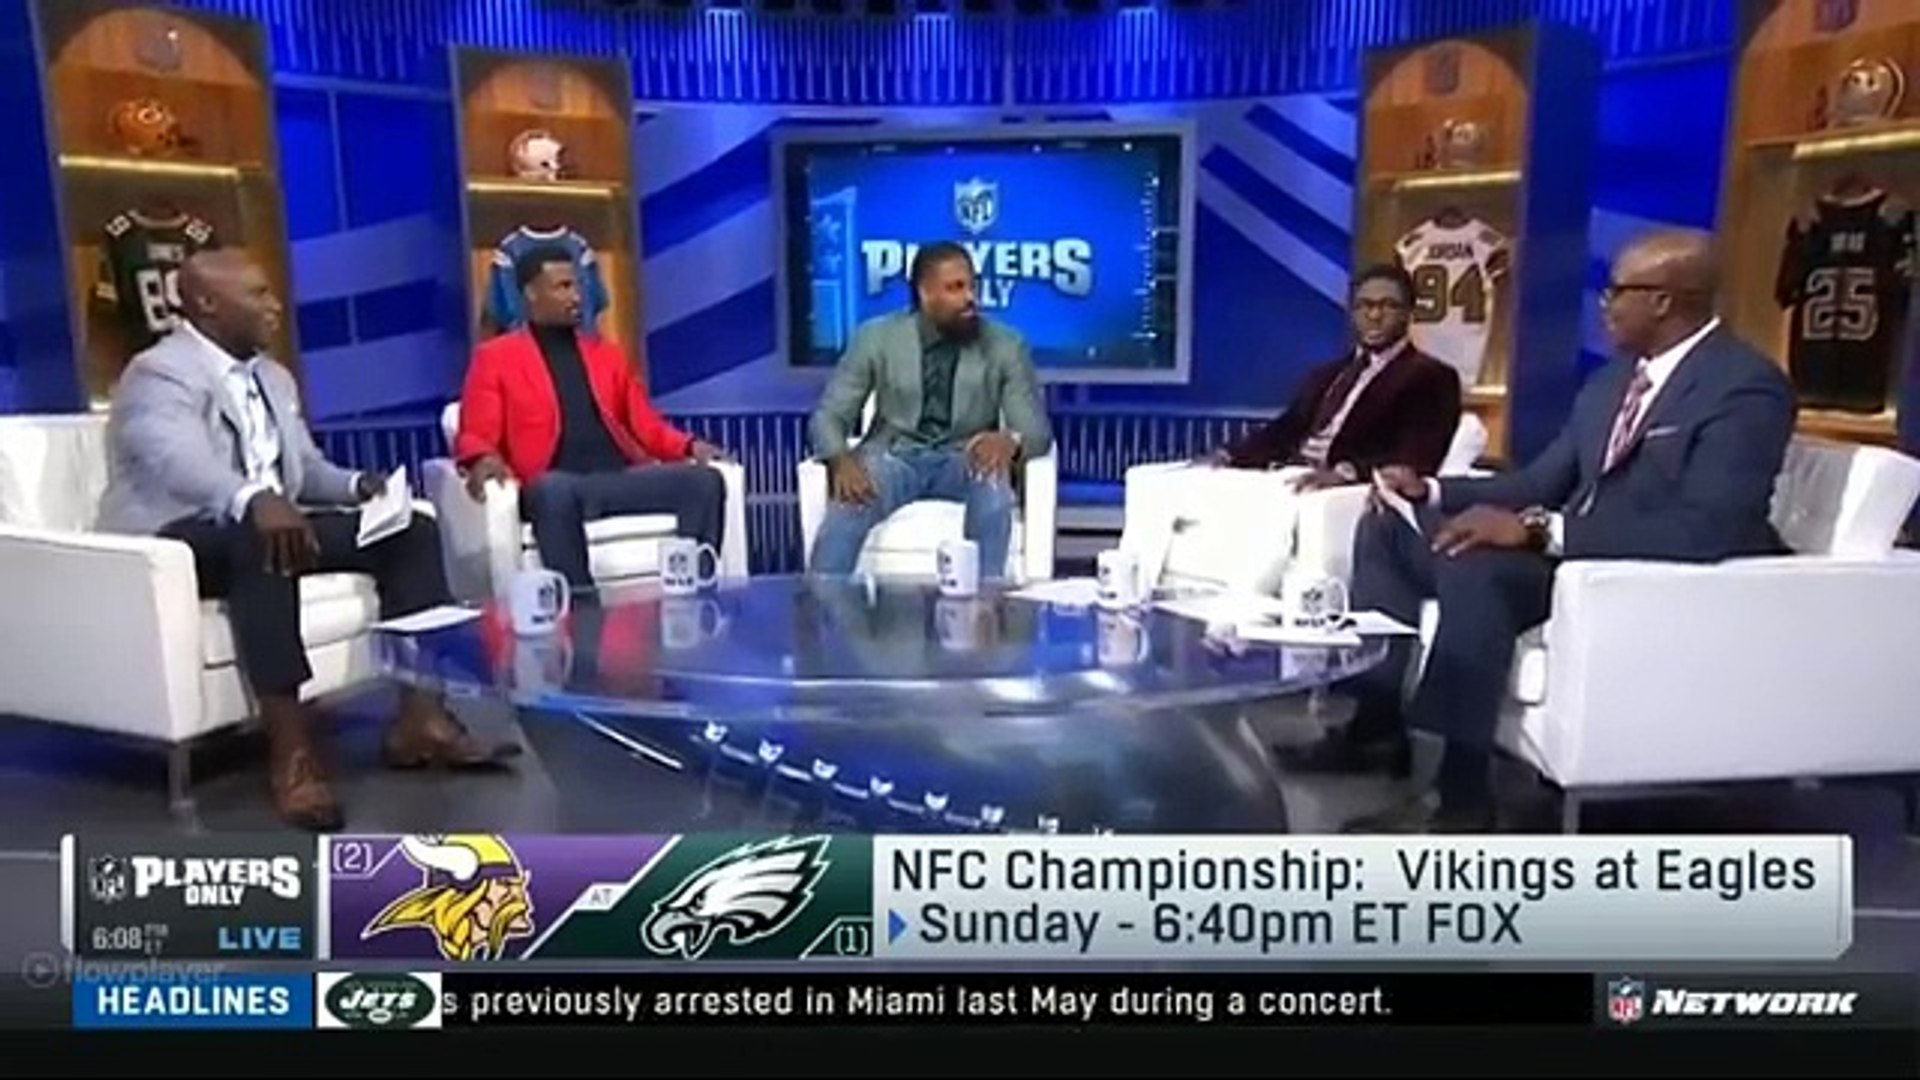 Vikings vs Eagles: NFC Championship - Who will win? | NFL Players Only